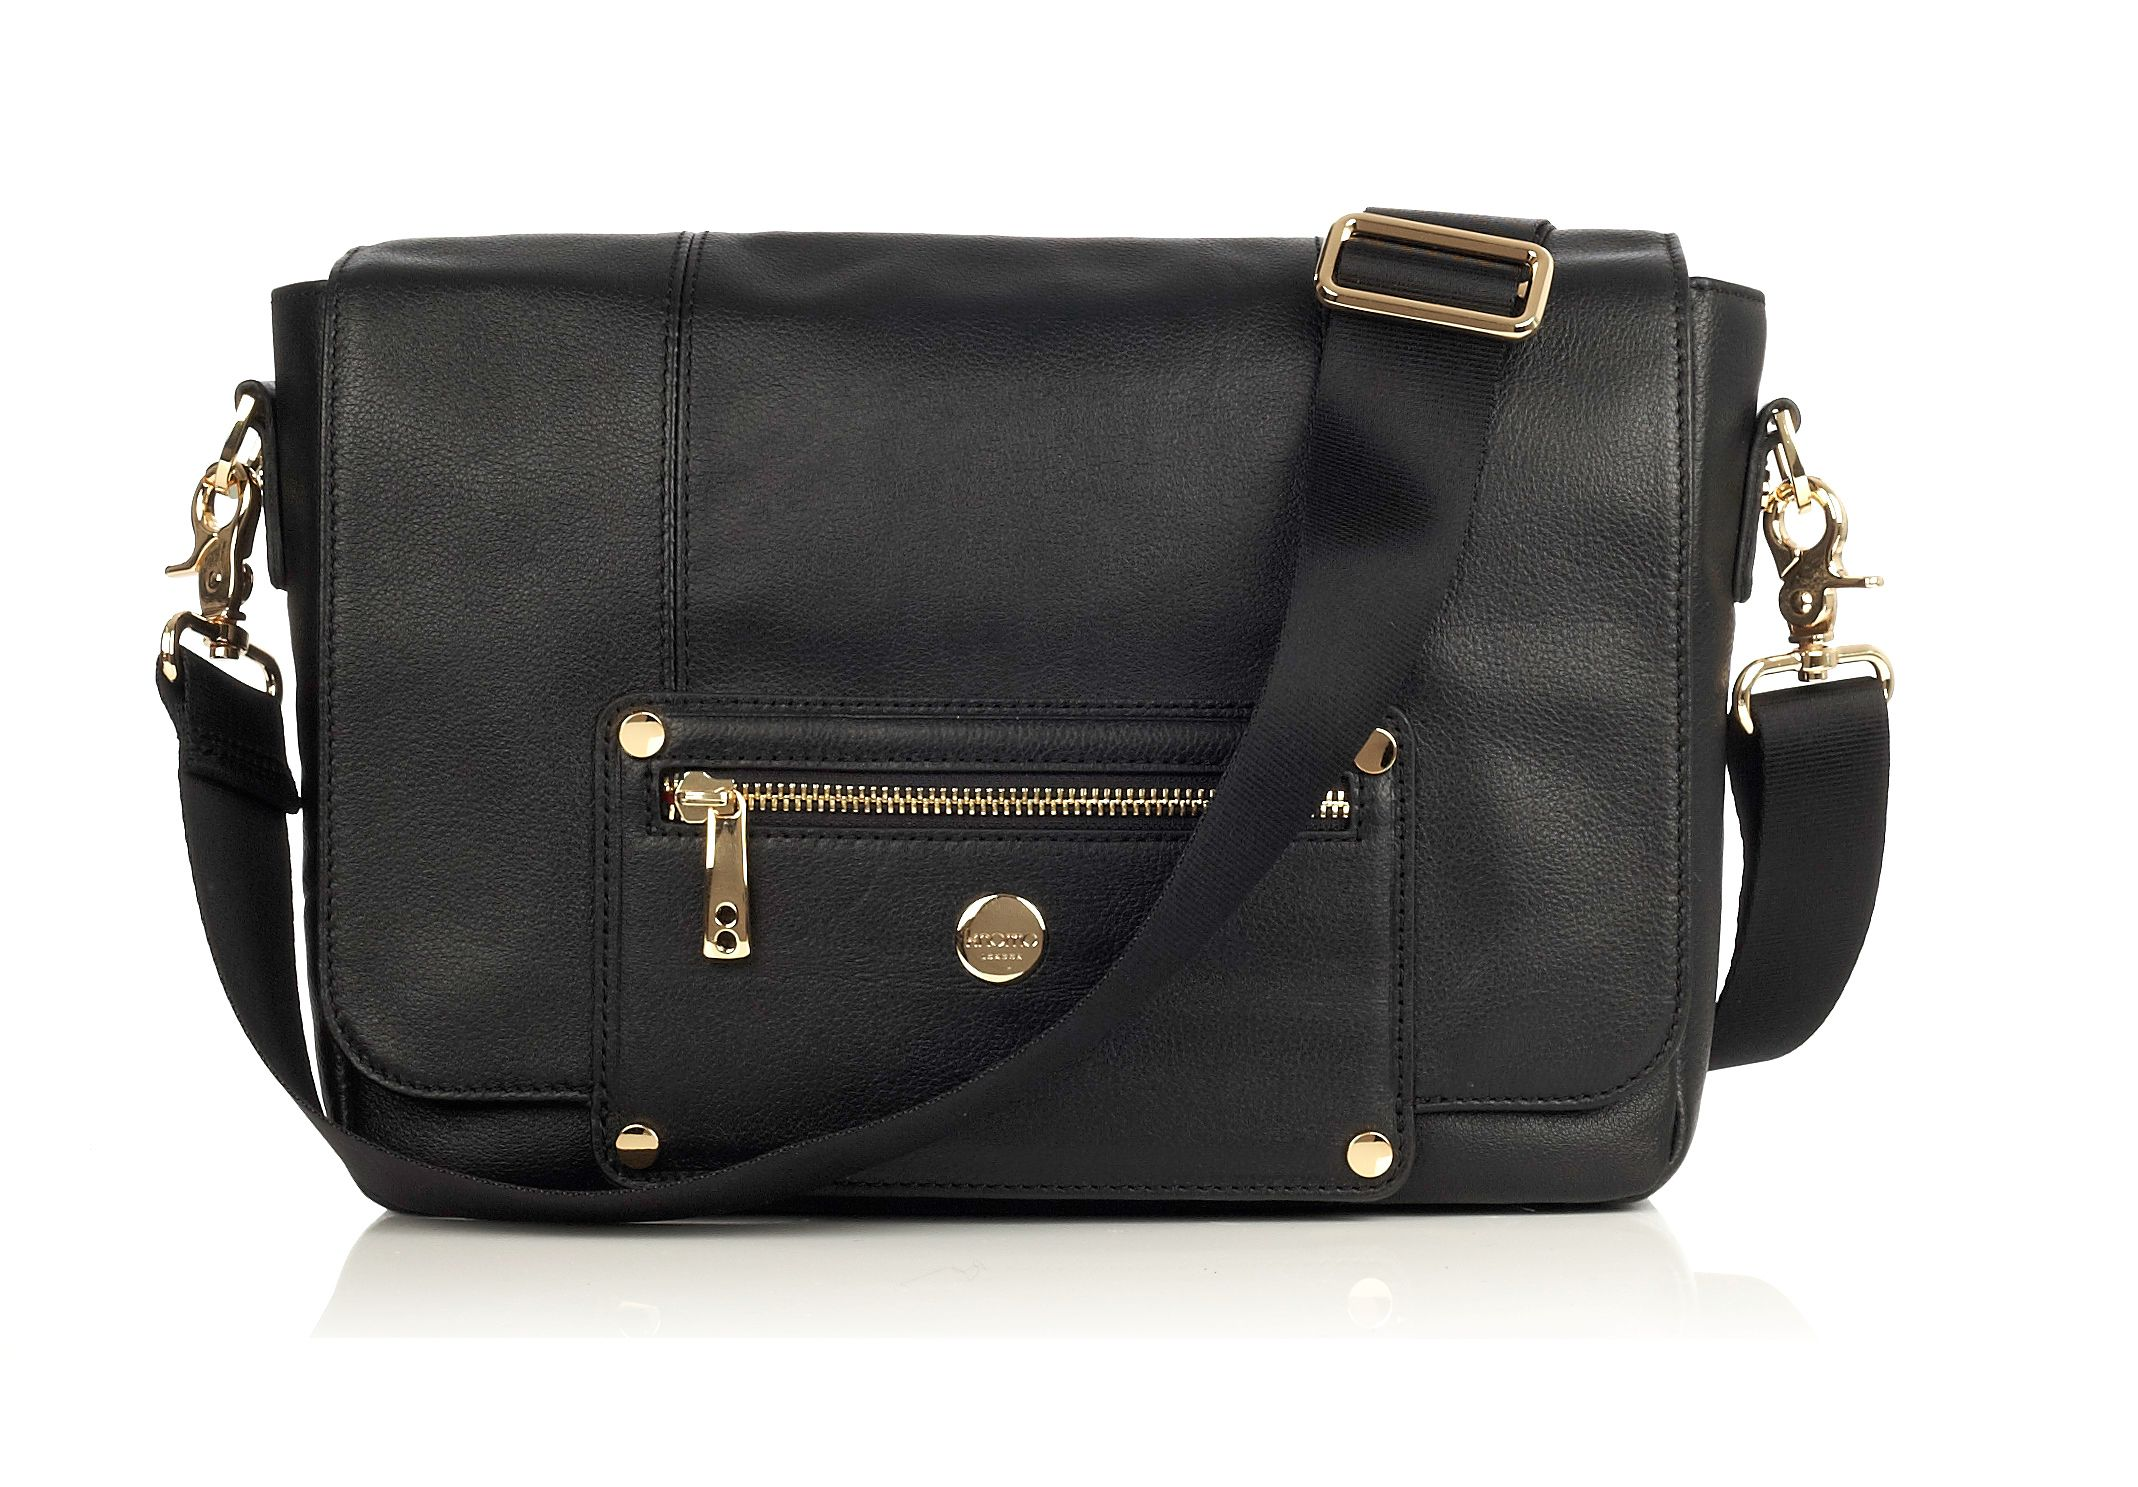 Alba lady bag black